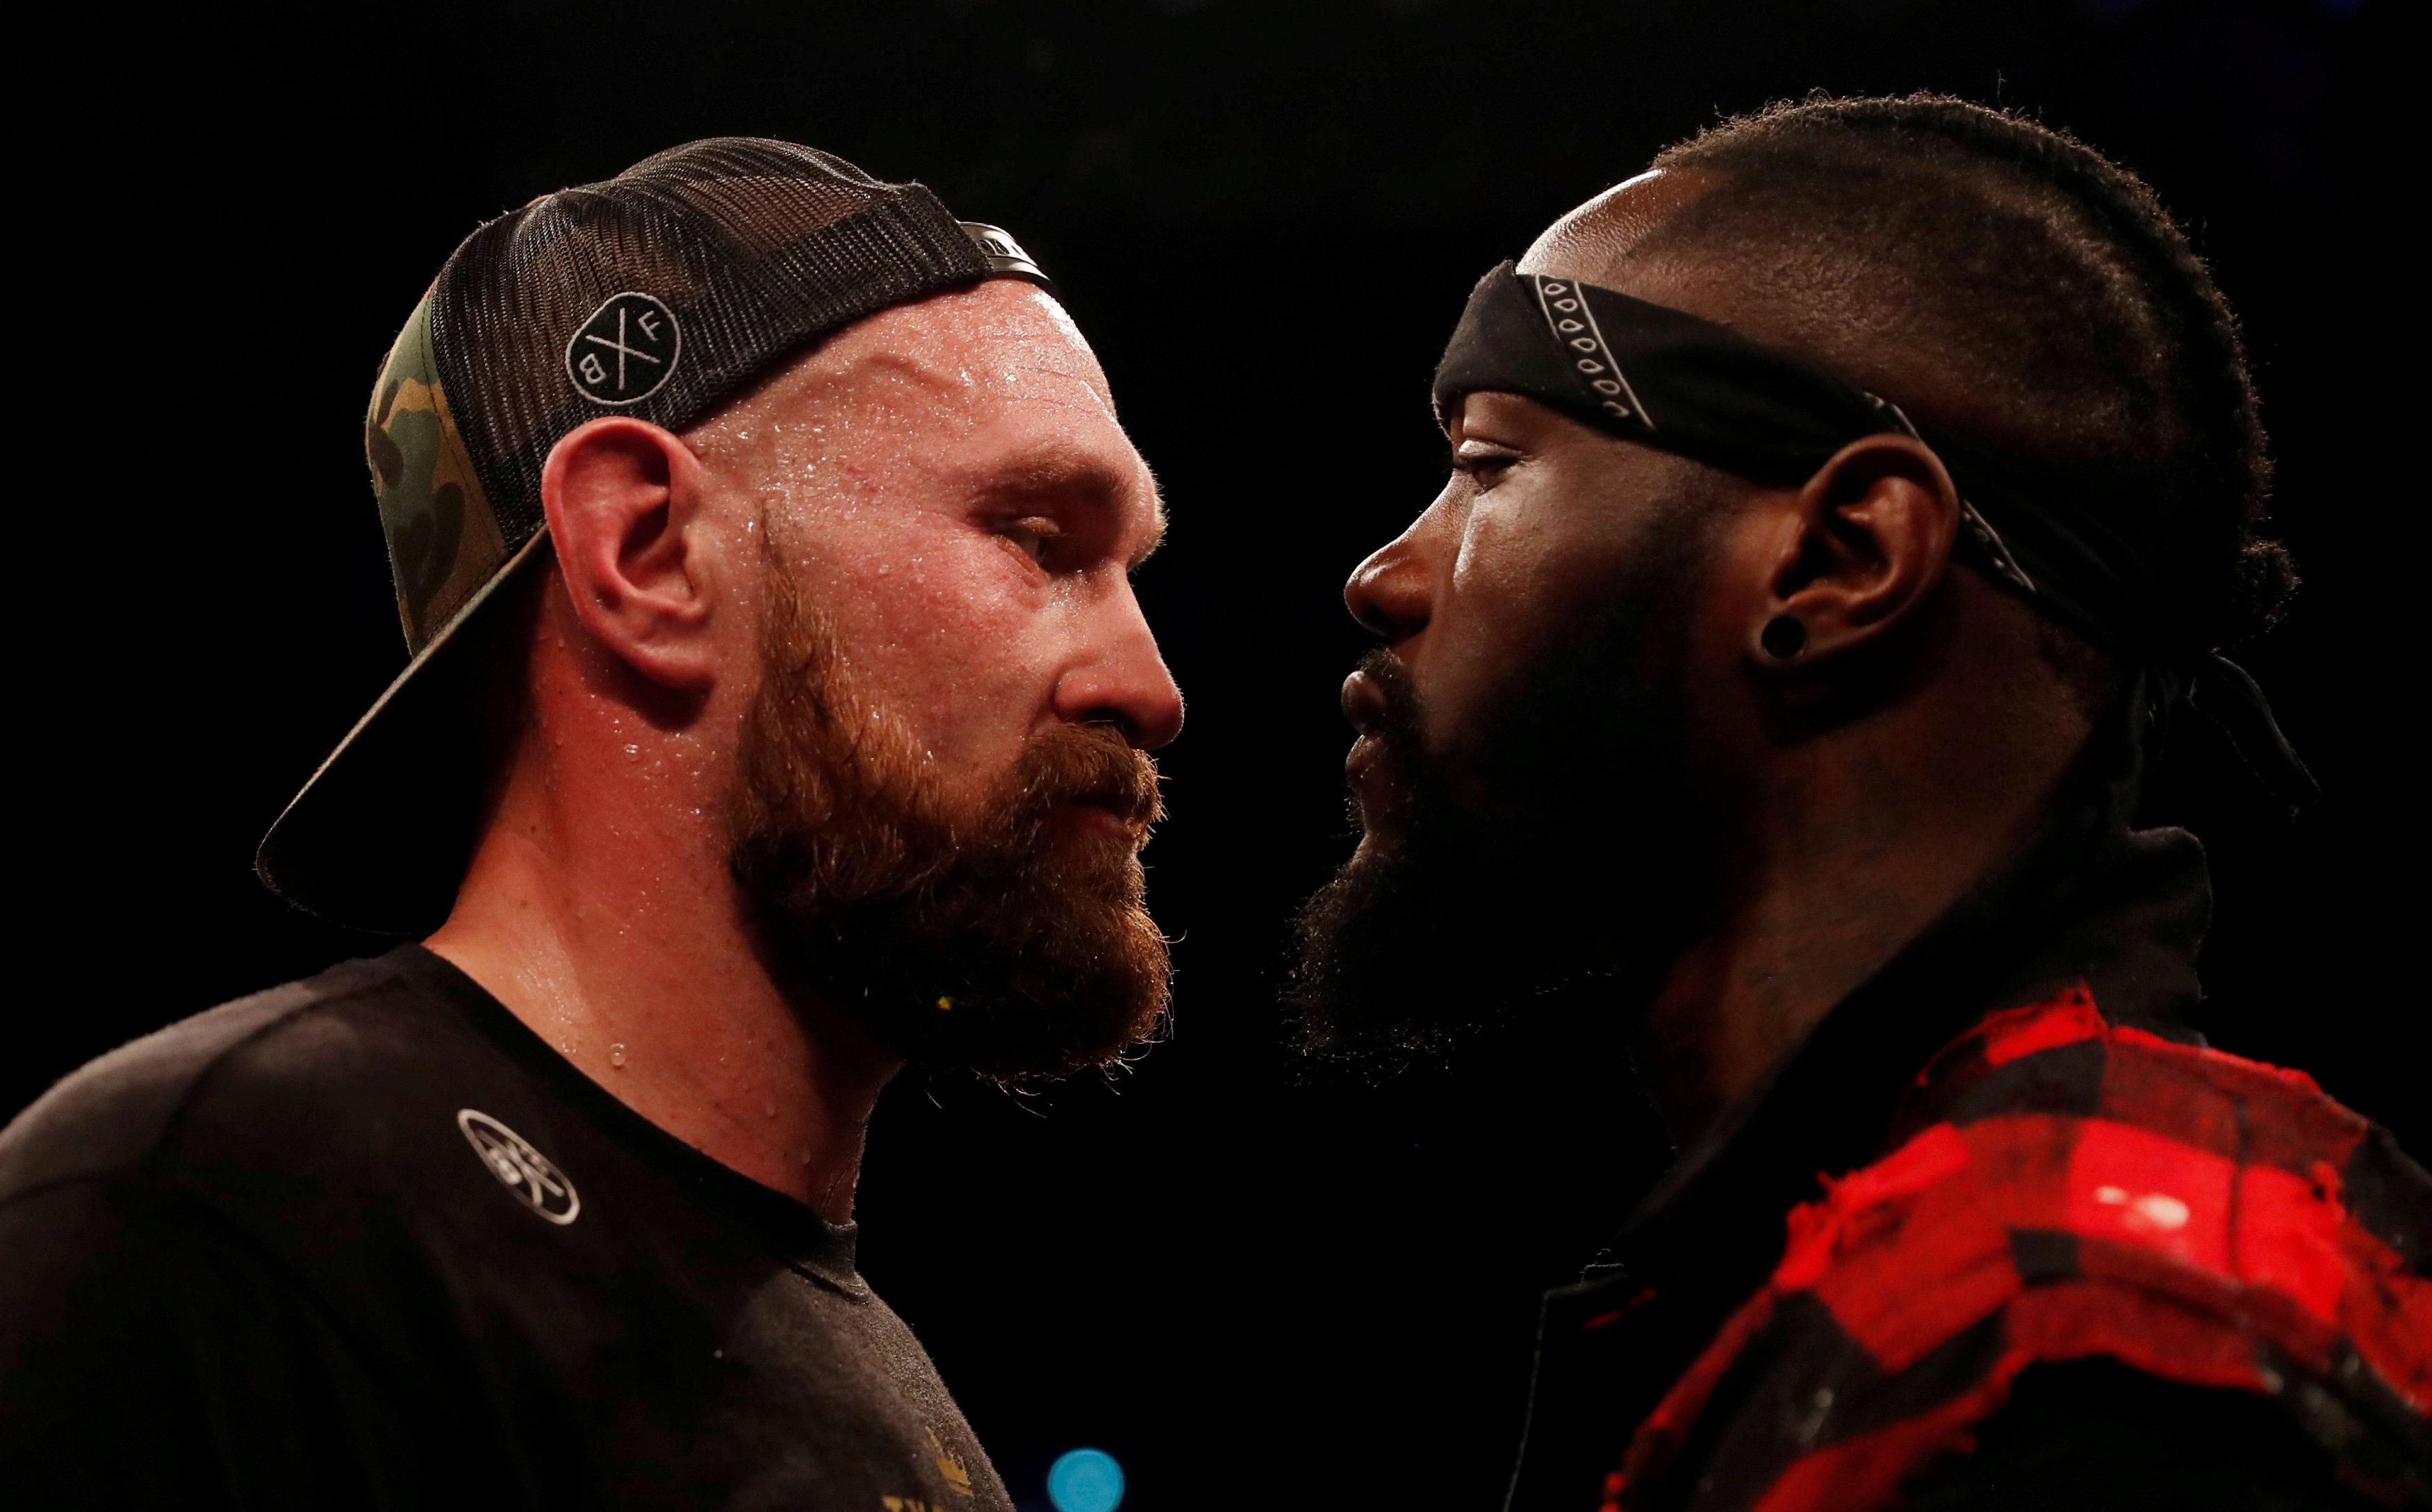 Tyson Fury will challenge Deontay Wilder for WBC heavyweight title at the Staples Center in LA